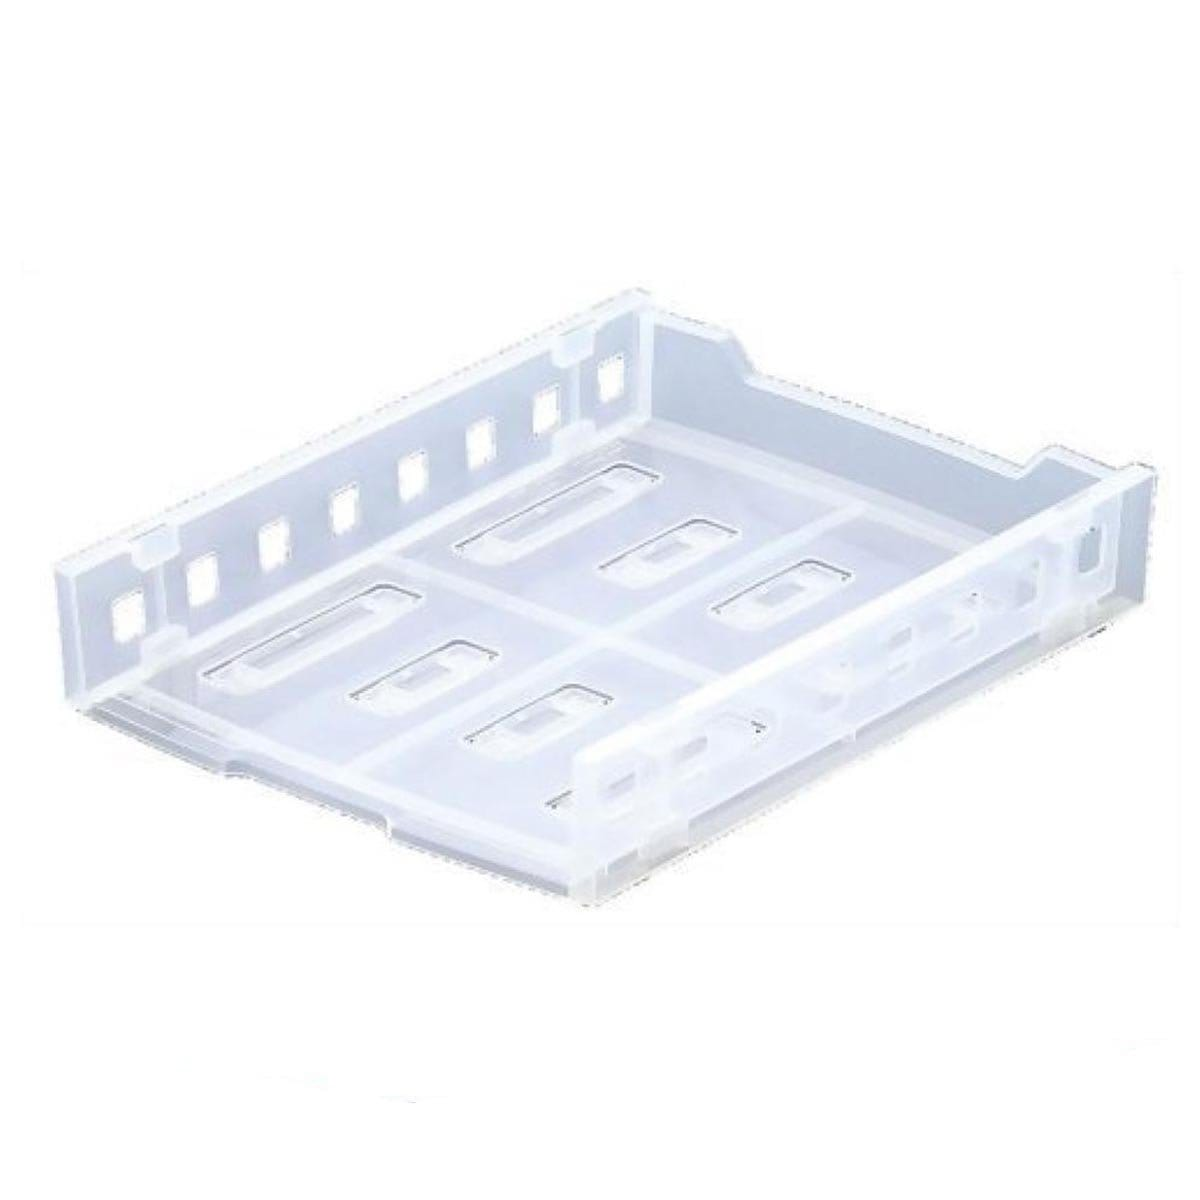 Japanese Large Plastic A4 Size Rack